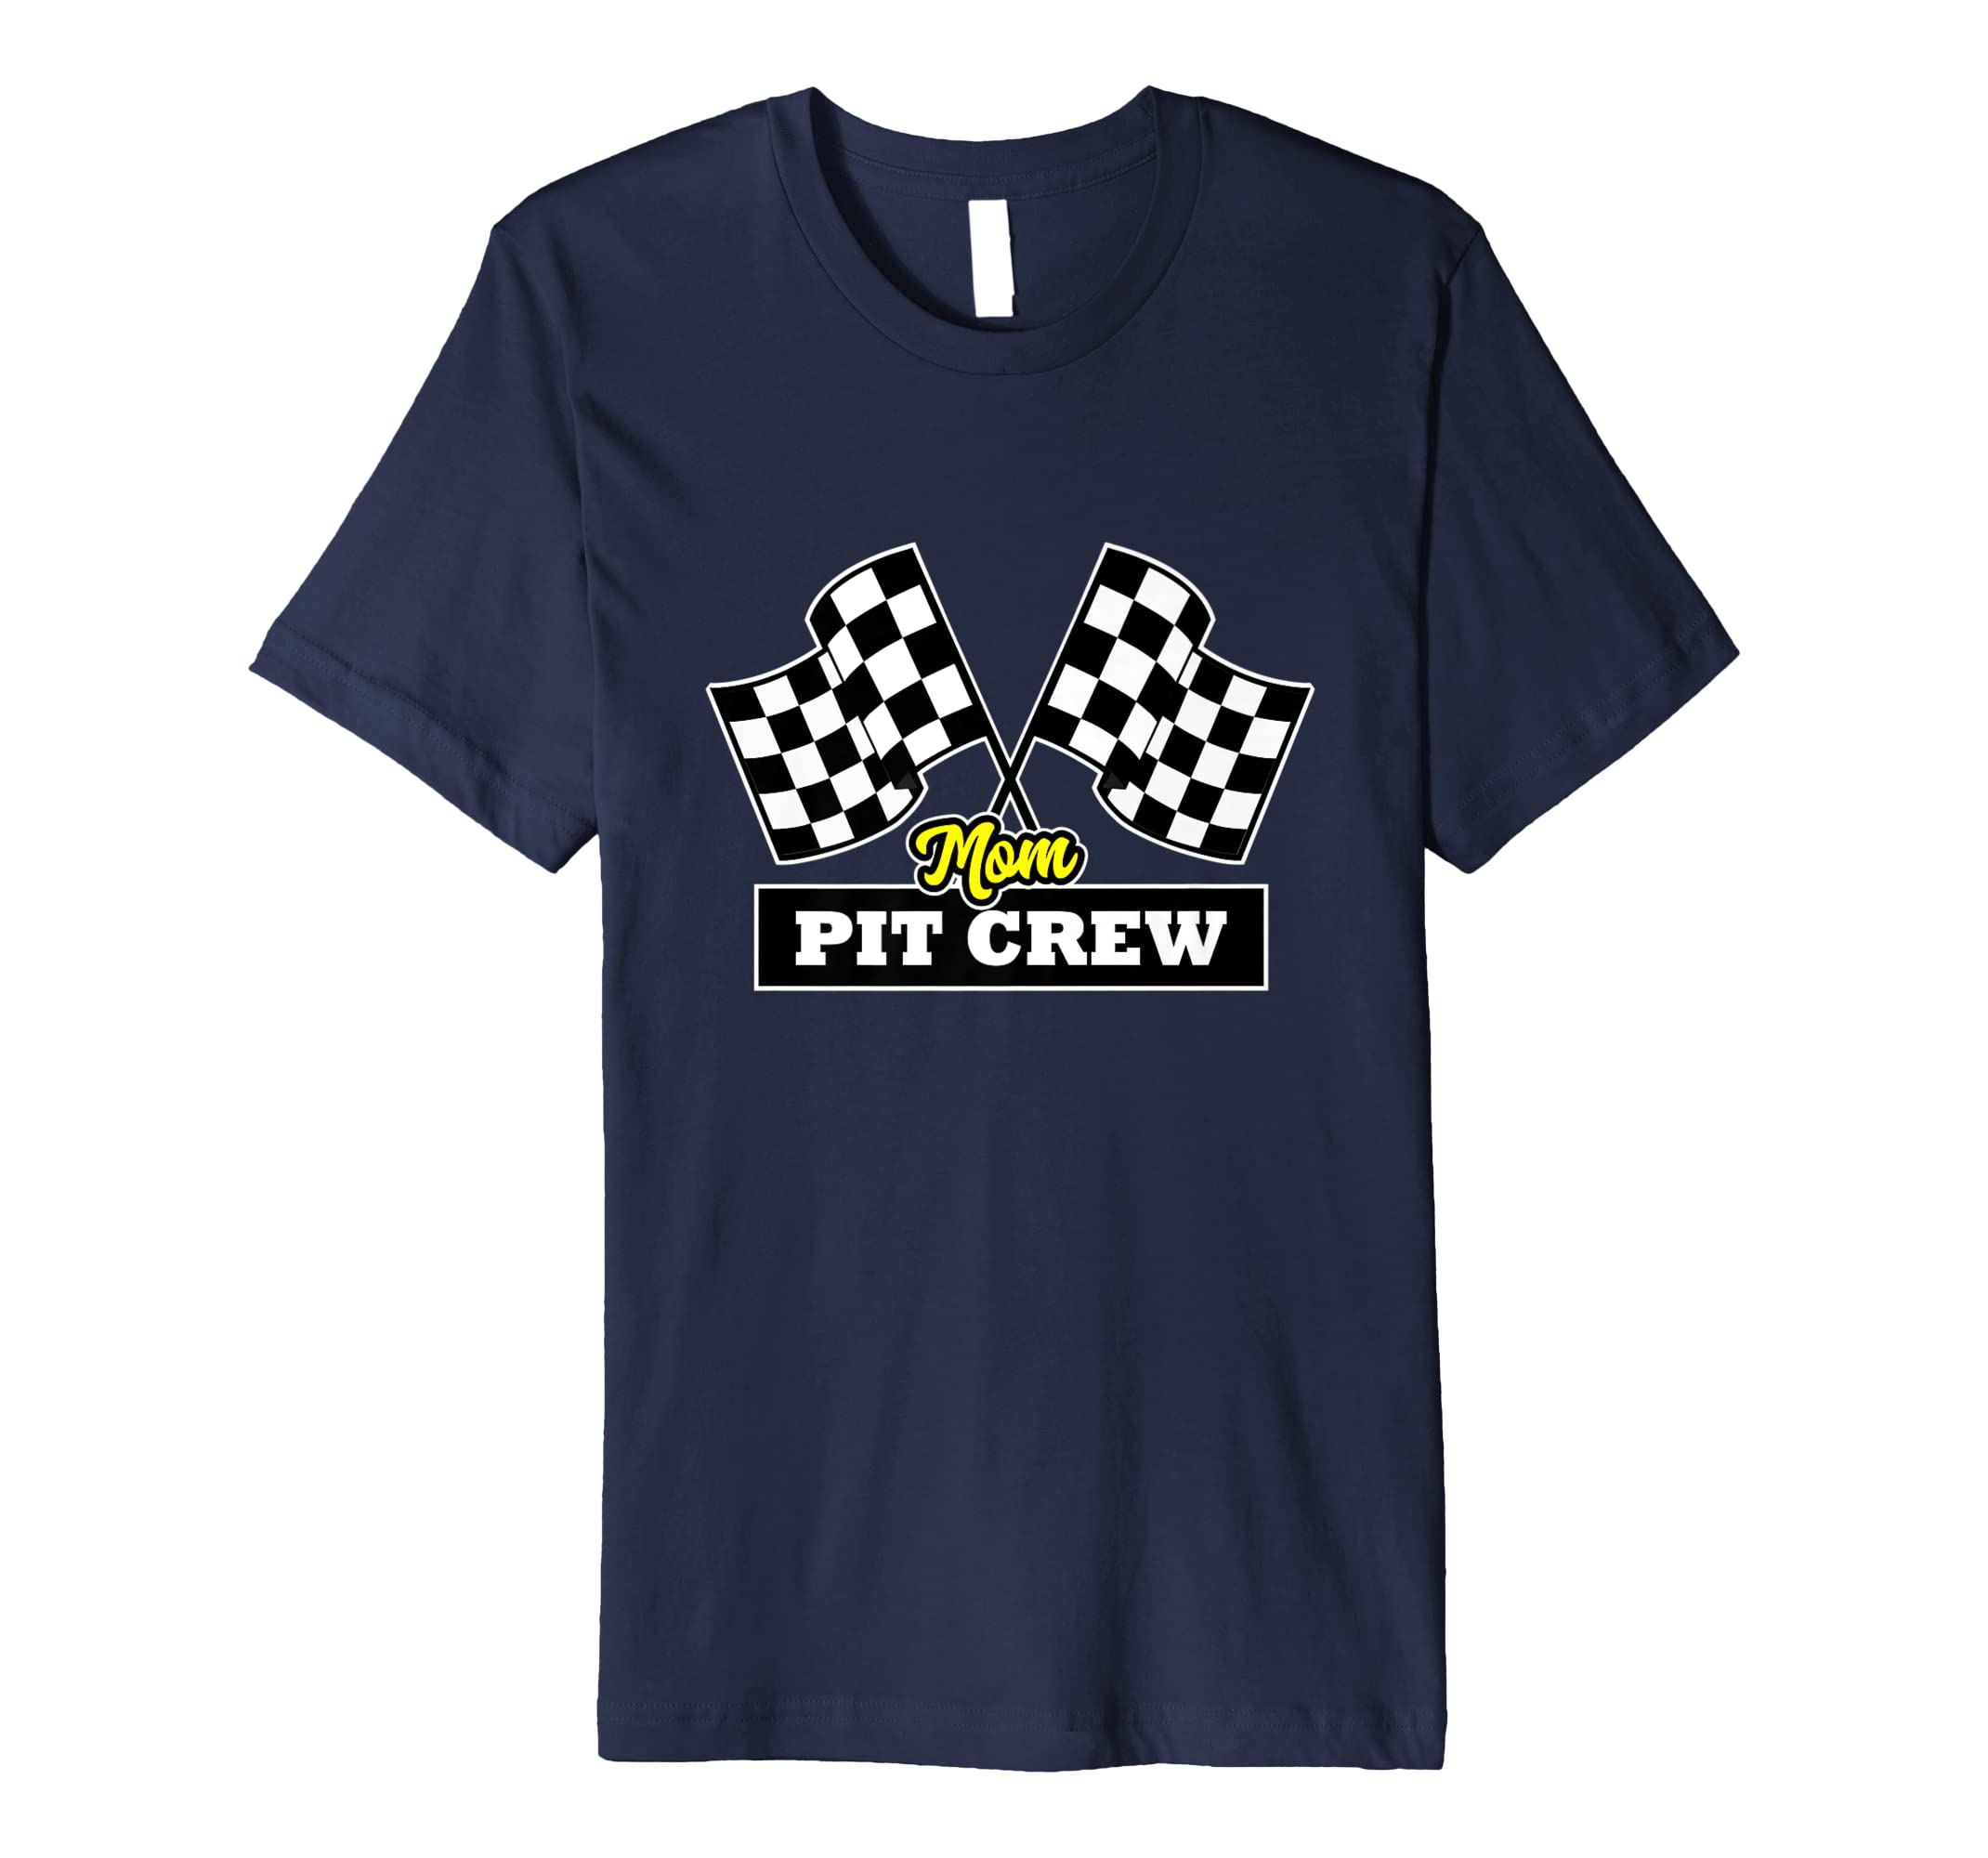 Pit Crew Shirts >> Pit Crew Shirts For Racing Party Mom Pit Premium Colonhue